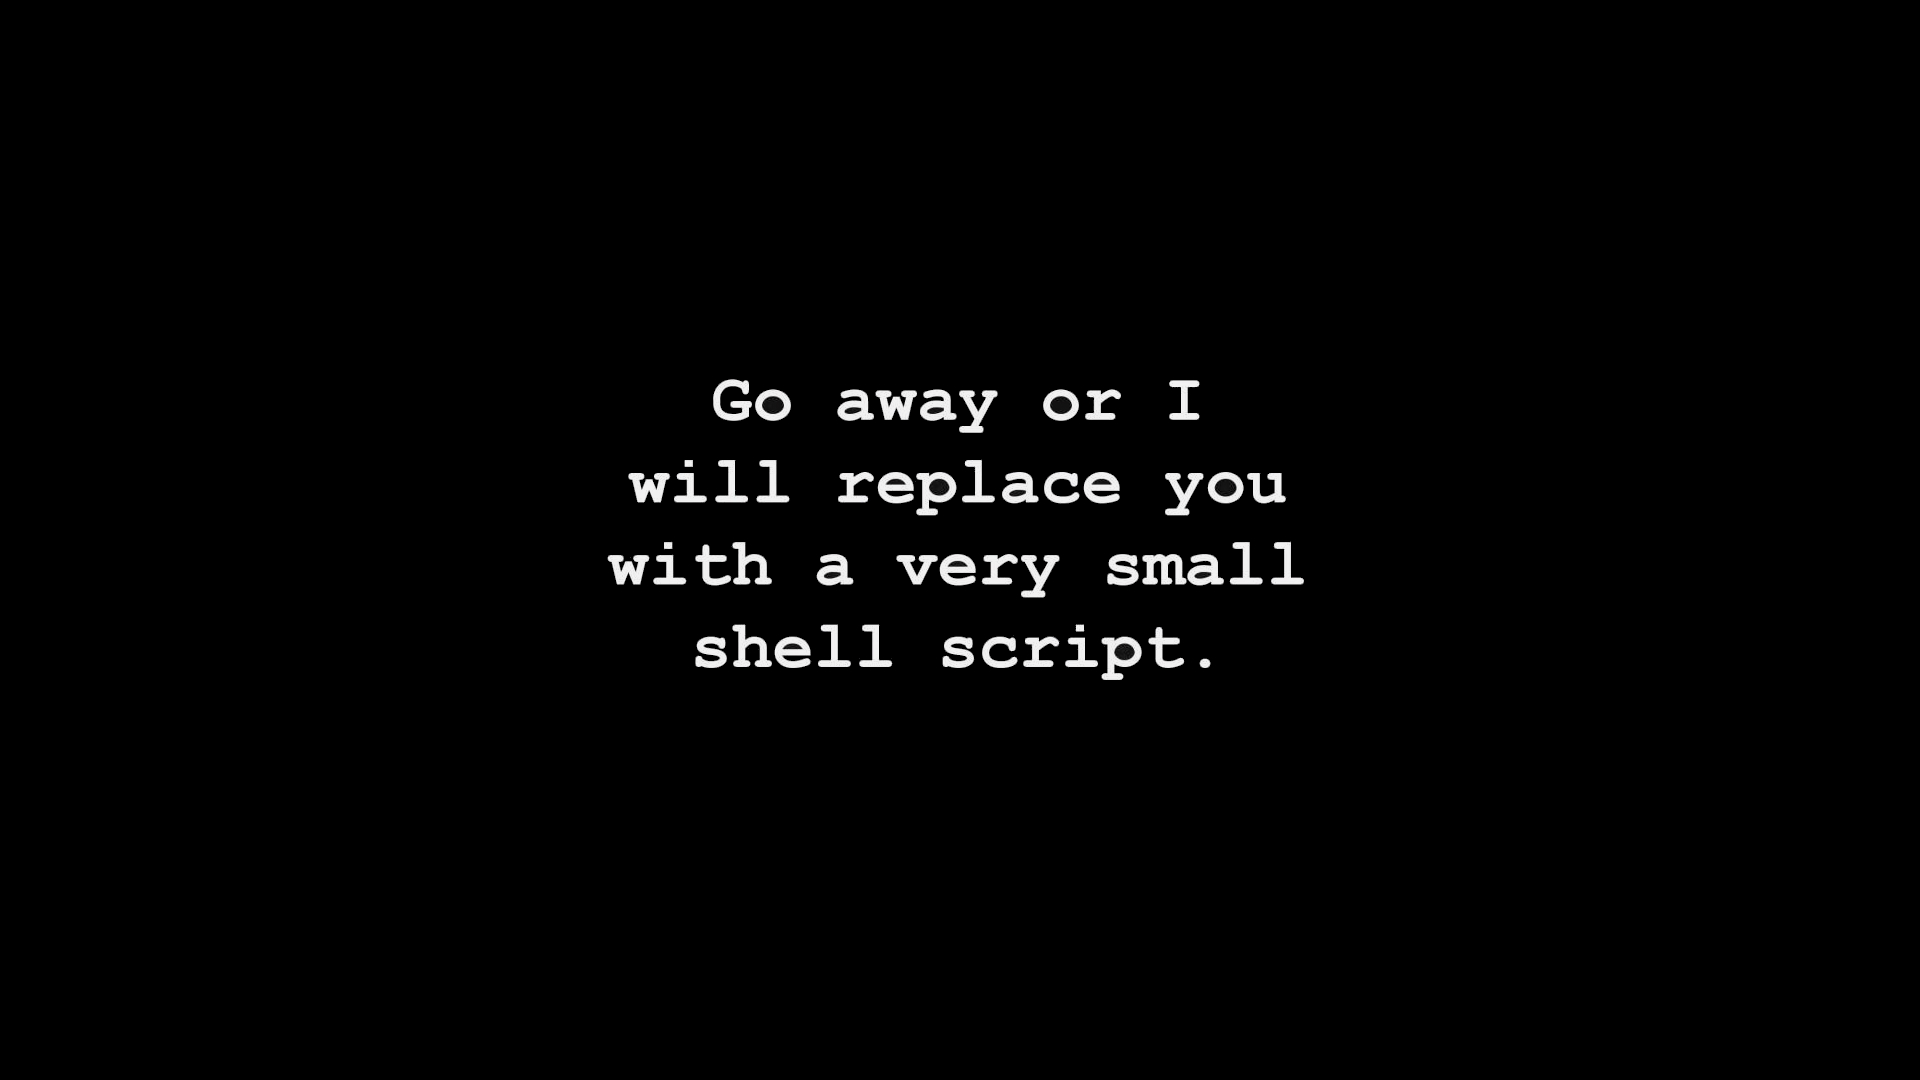 Shell Script Full HD Wallpaper And Background Image